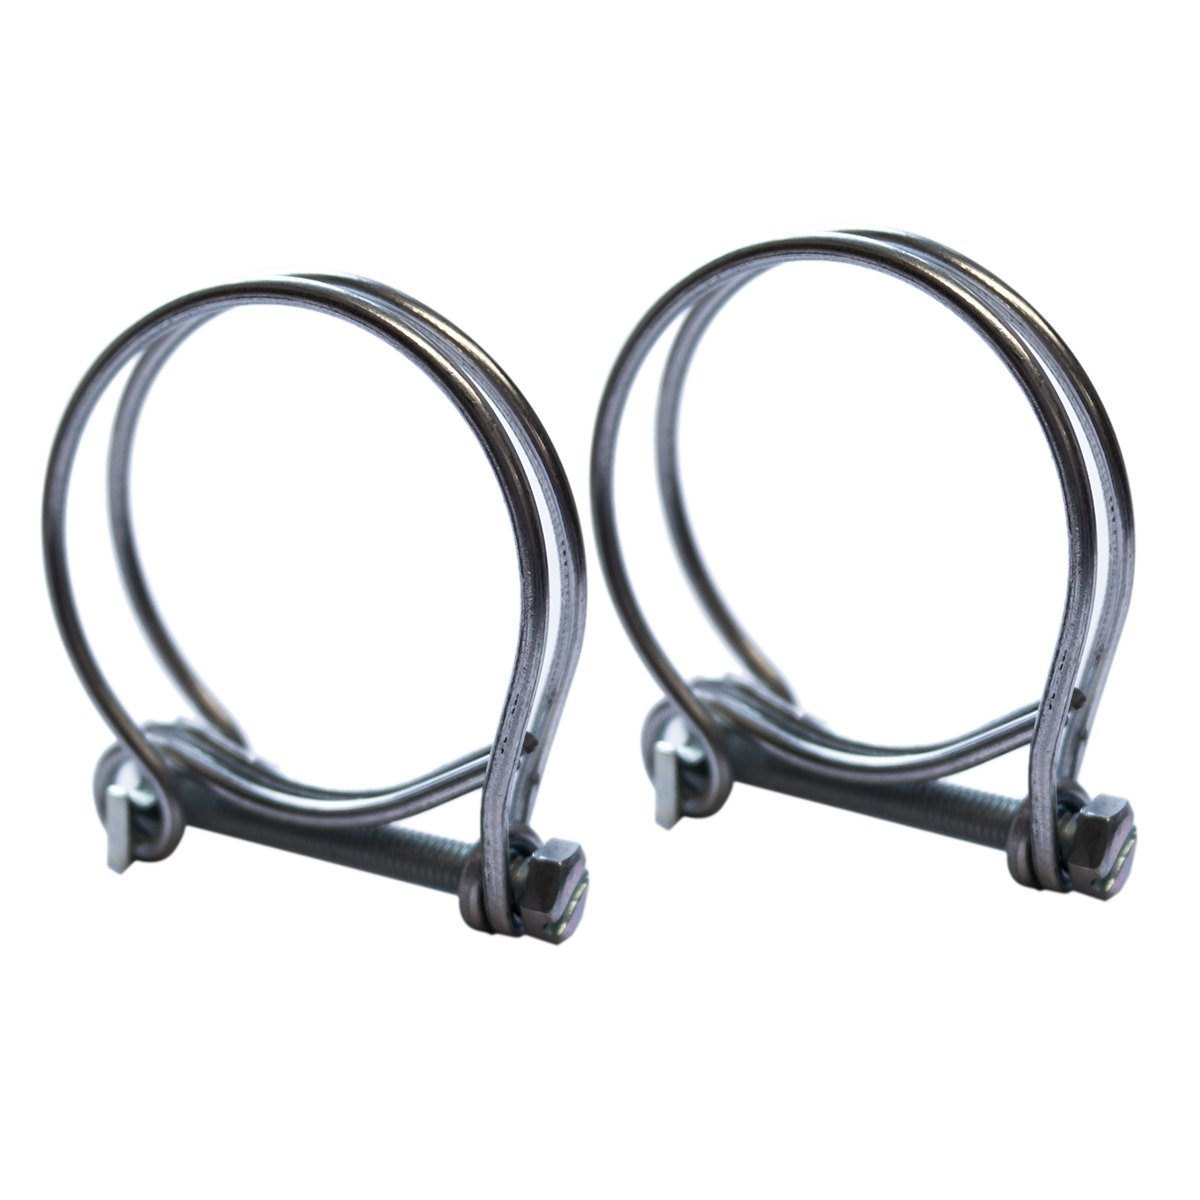 Double Wire Hose Clips to fit 40mm (1.5in) Pipe Pisces